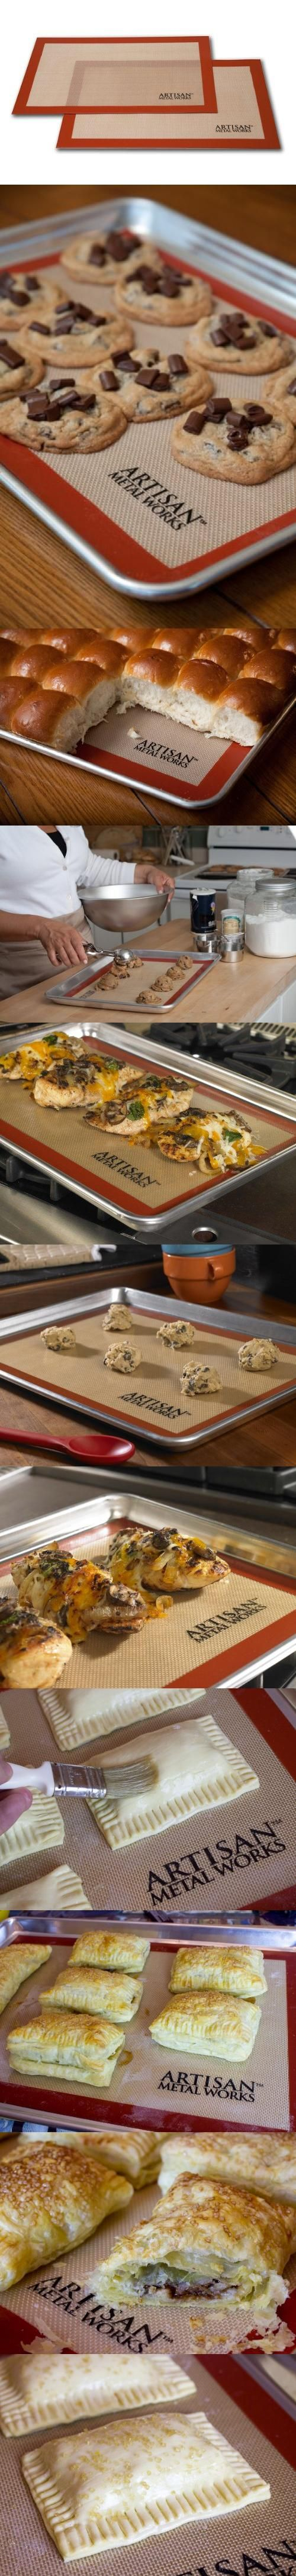 Artisan (2 pk.) Non-Stick Silicon Baking Mat Set. 16 5/8 x 11 Fits half size baking sheets 18 x 13. Set includes two mats.. Includes one professional grade 18 gauge aluminum baking sheet and a durable premium silicone baking mat. Set provides outstanding heat conductivity; FDA and LFGB approved silicone. Artisan Silicone baking mats can withstand temperatures from -40 degrees Fahrenheit to 480... #Artisan_Metal_Works #Kitchen